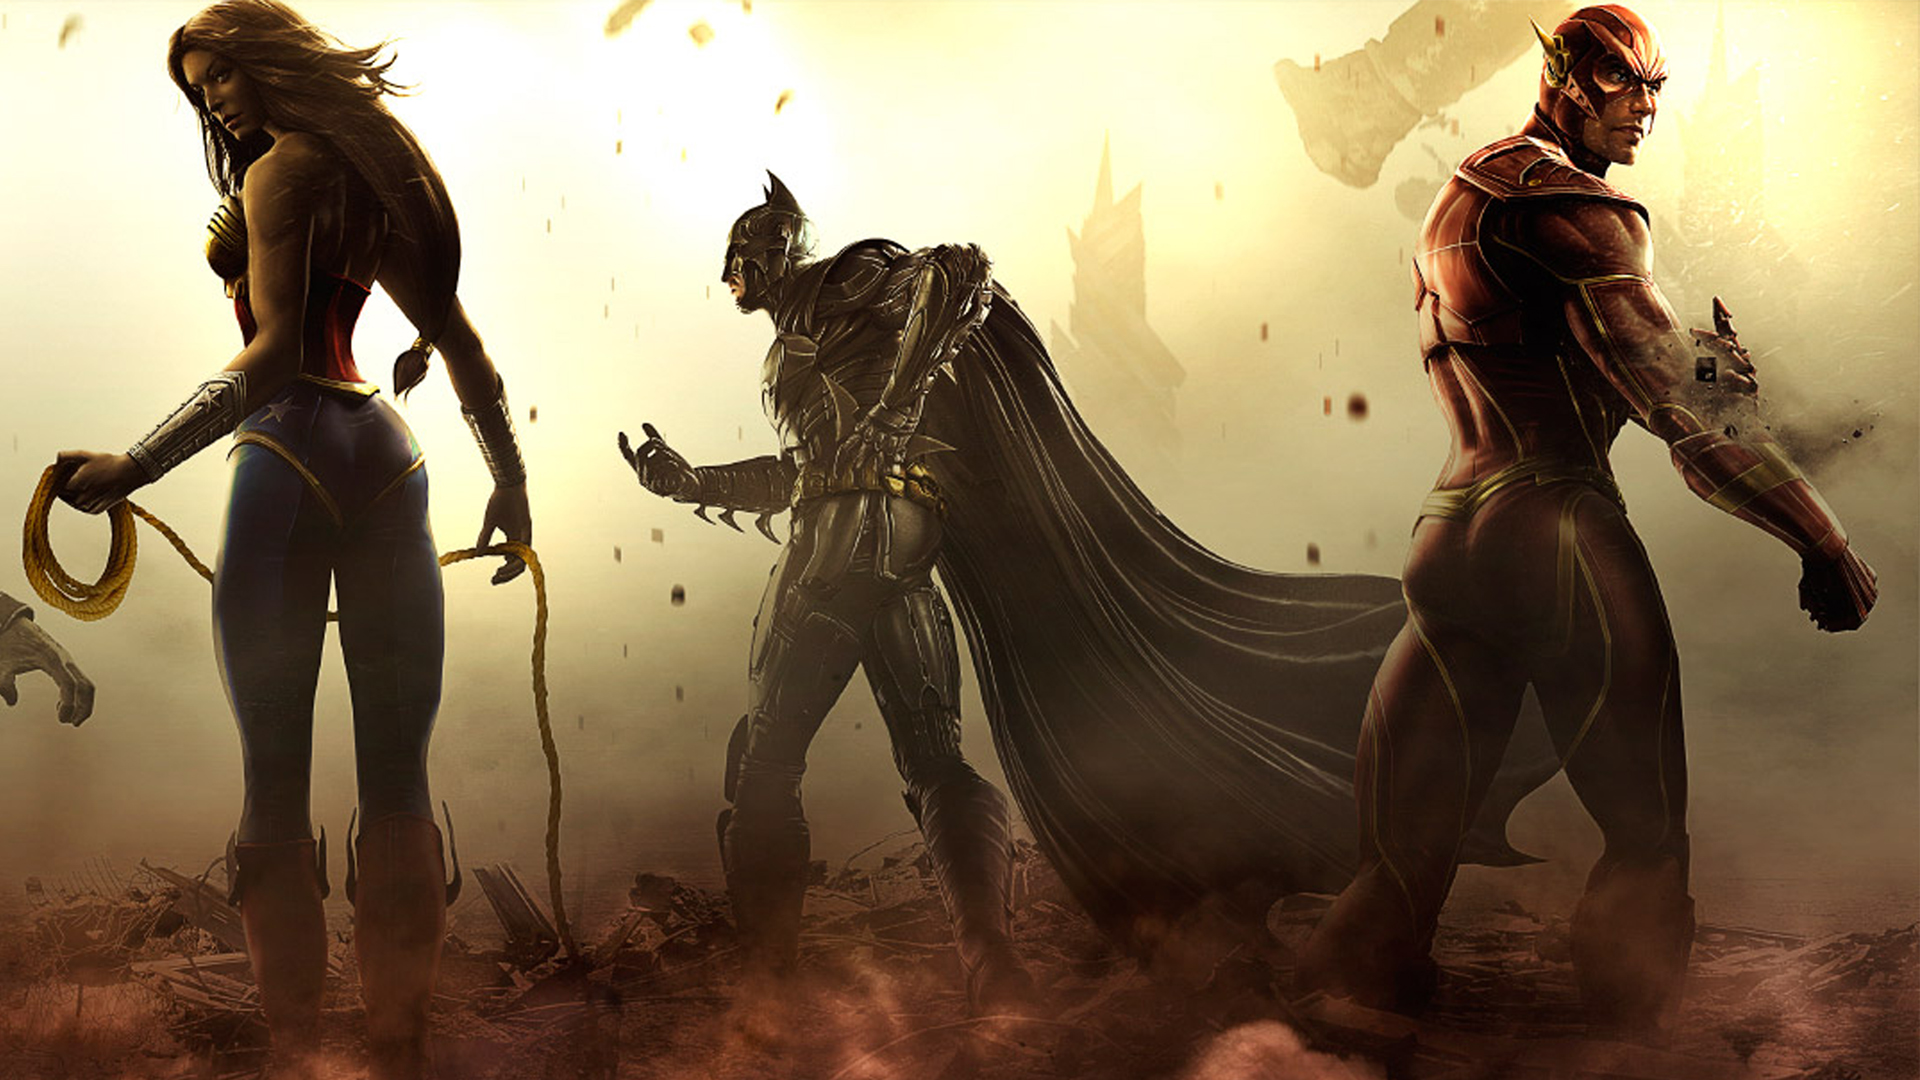 Bane and Lex Luthor confirmed for 'Injustice: Gods Among Us'